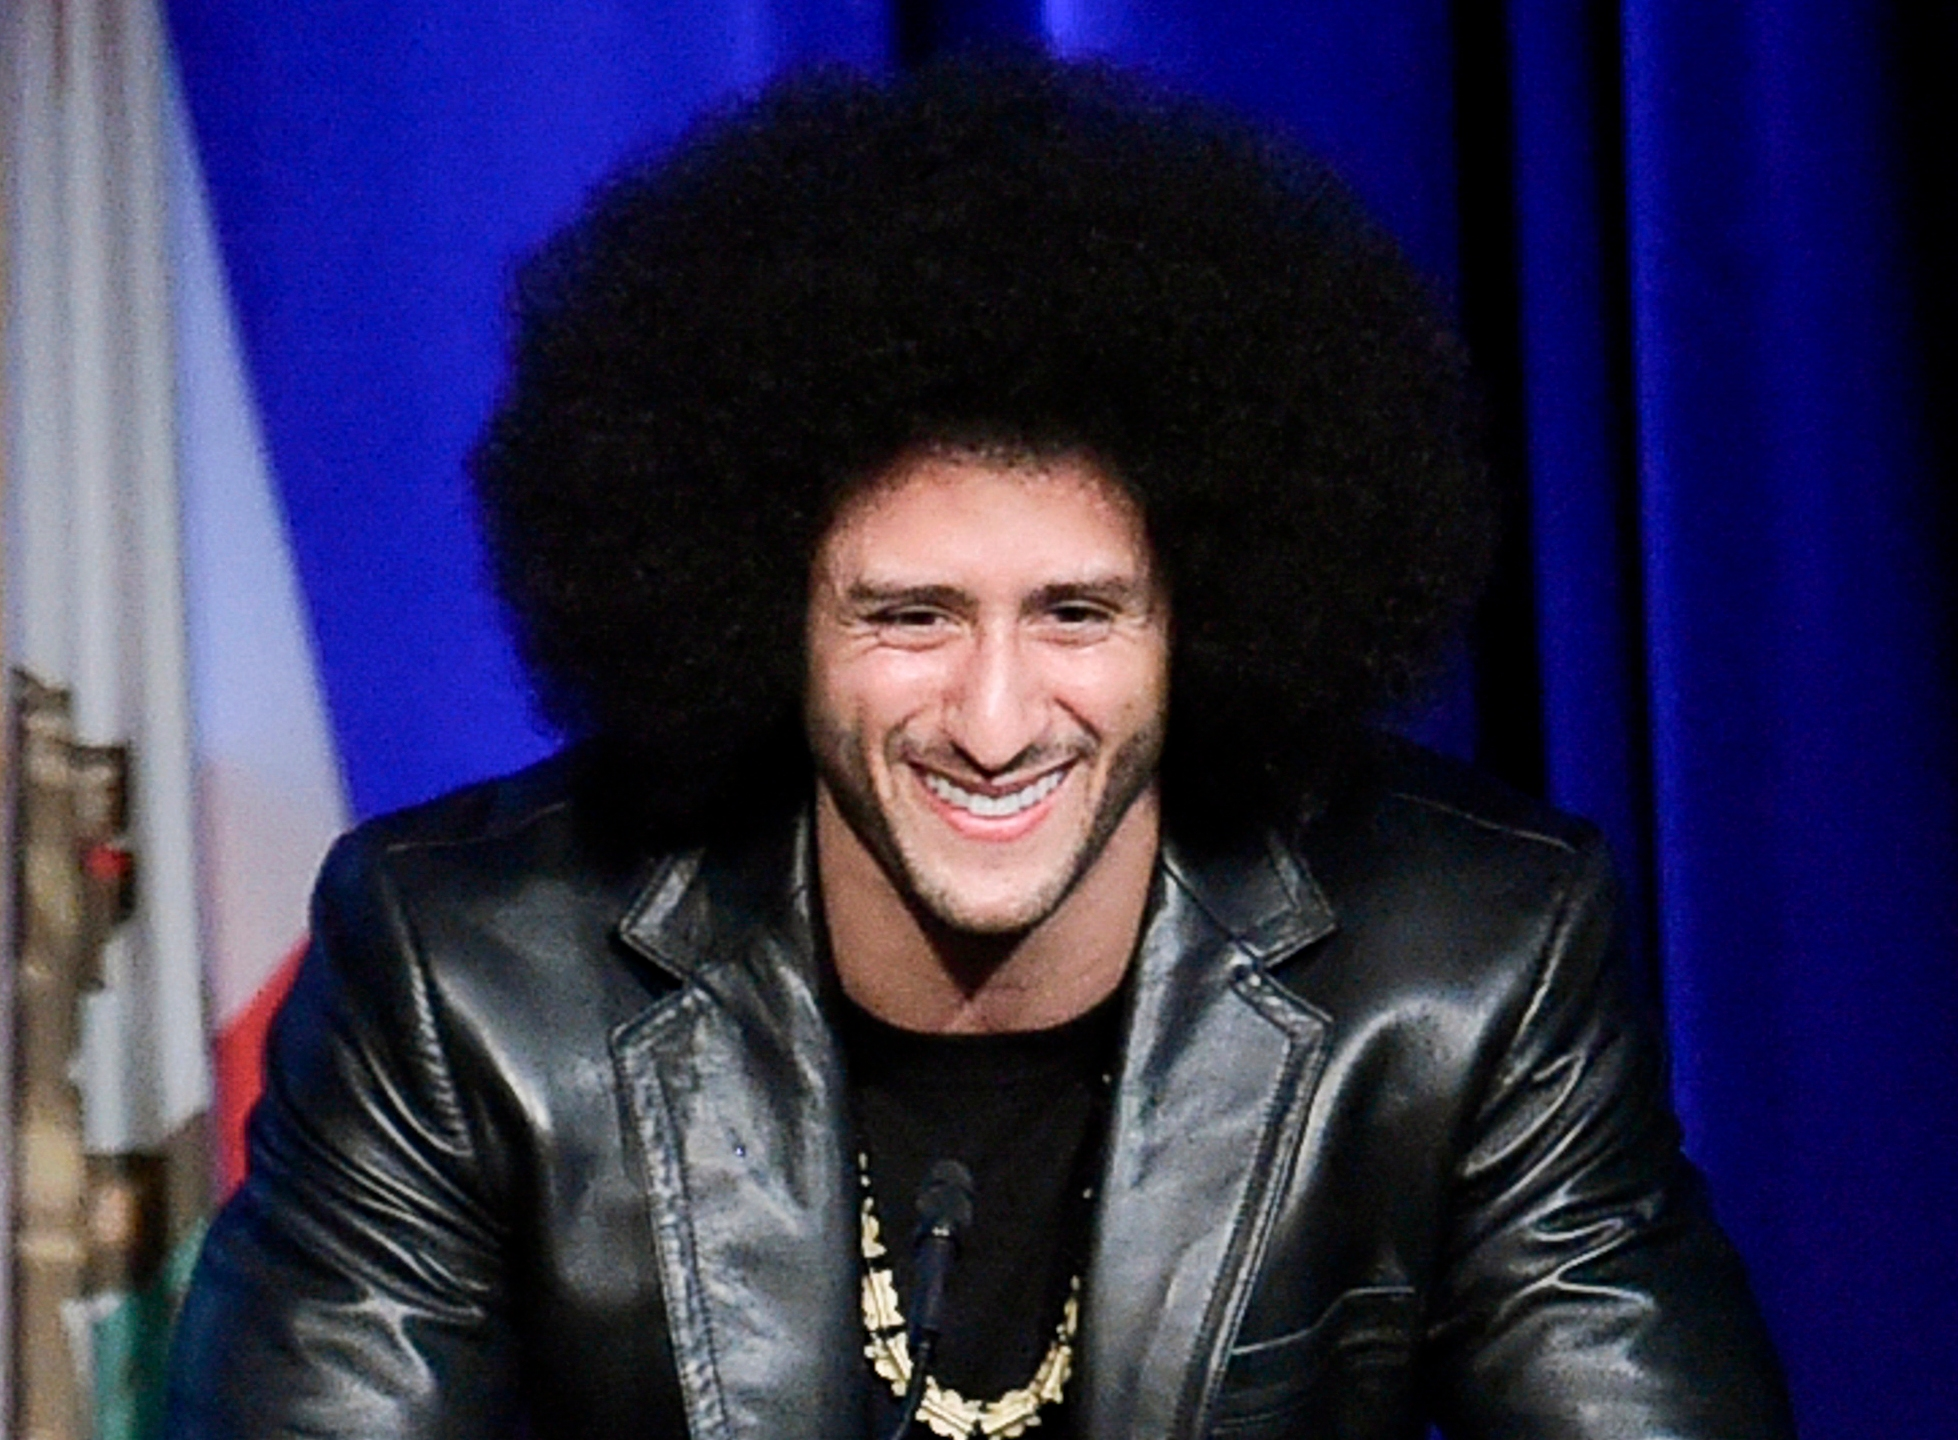 People-Colin_Kaepernick_54220-159532.jpg49319963